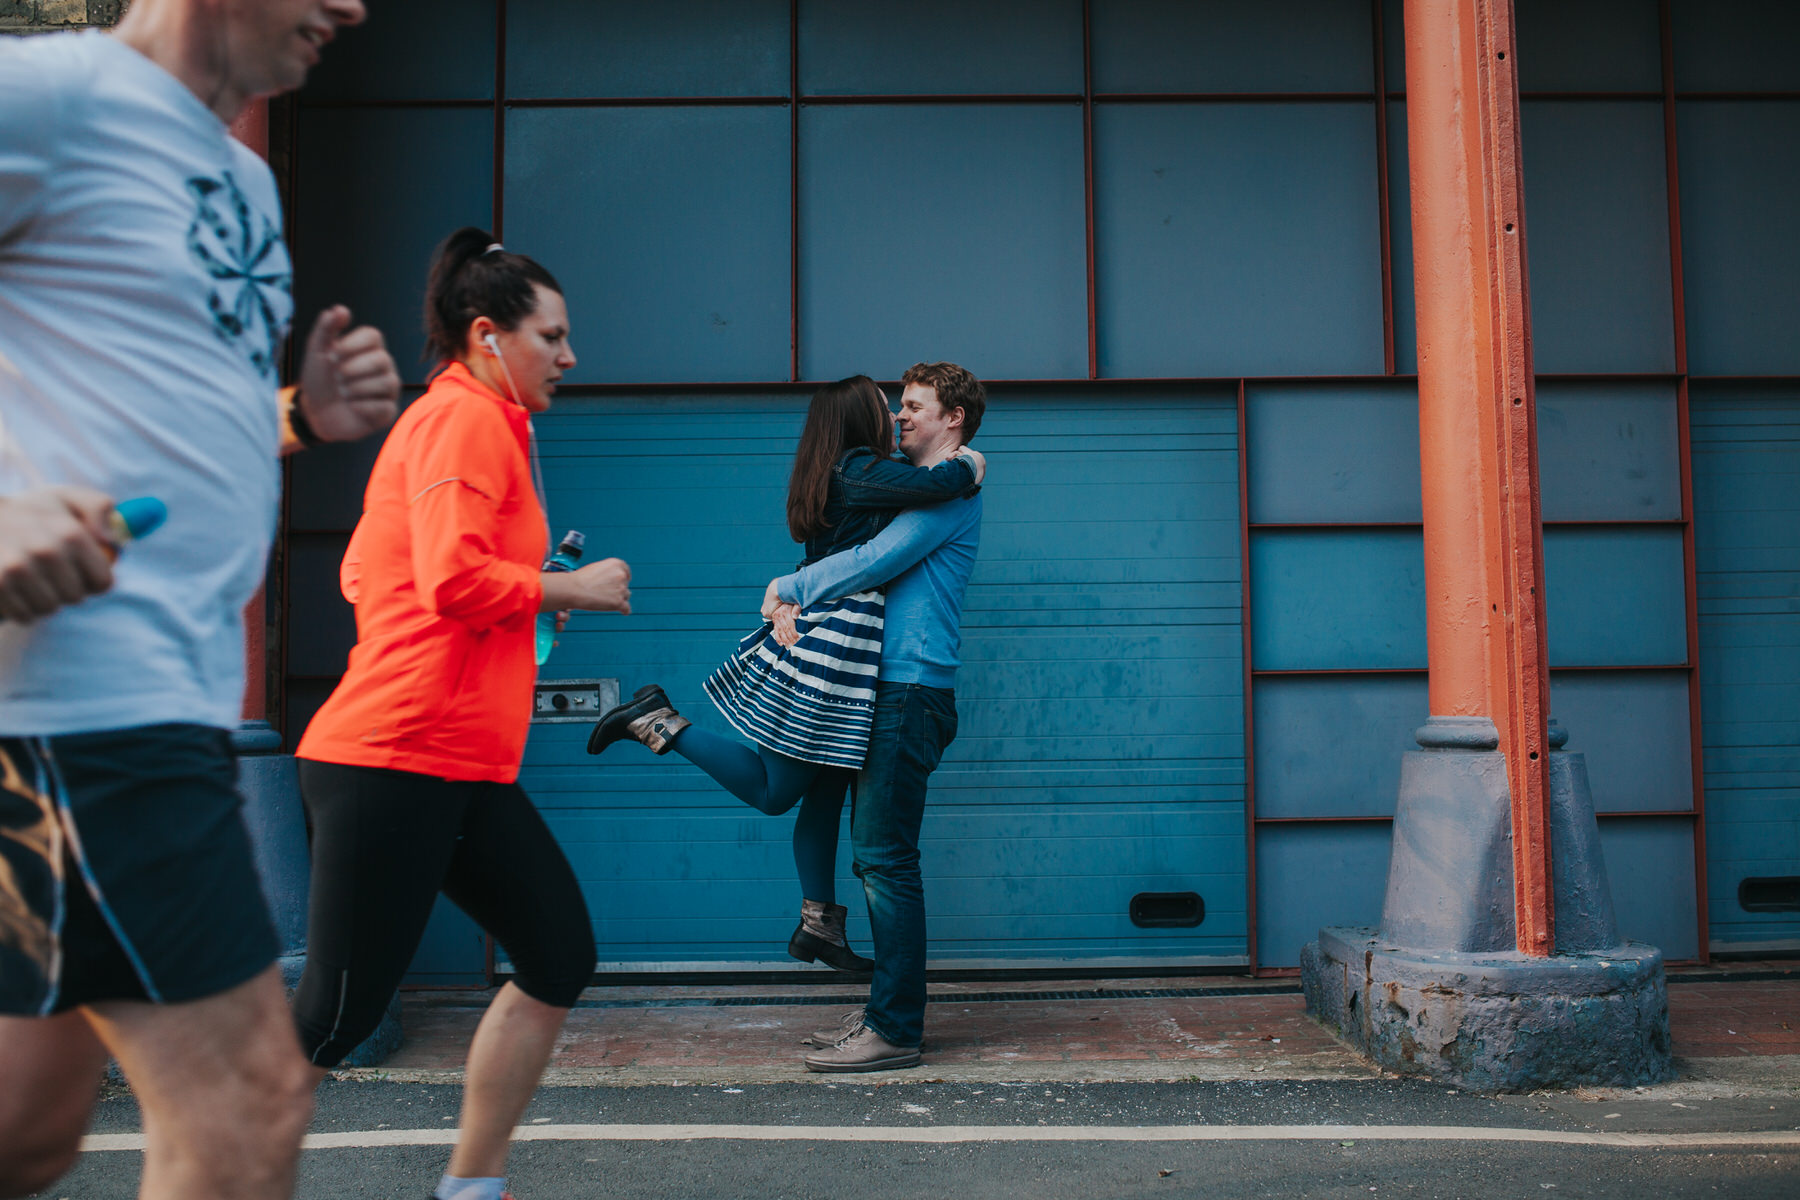 68-Quirky-engagement-London-photobomb-runners.jpg